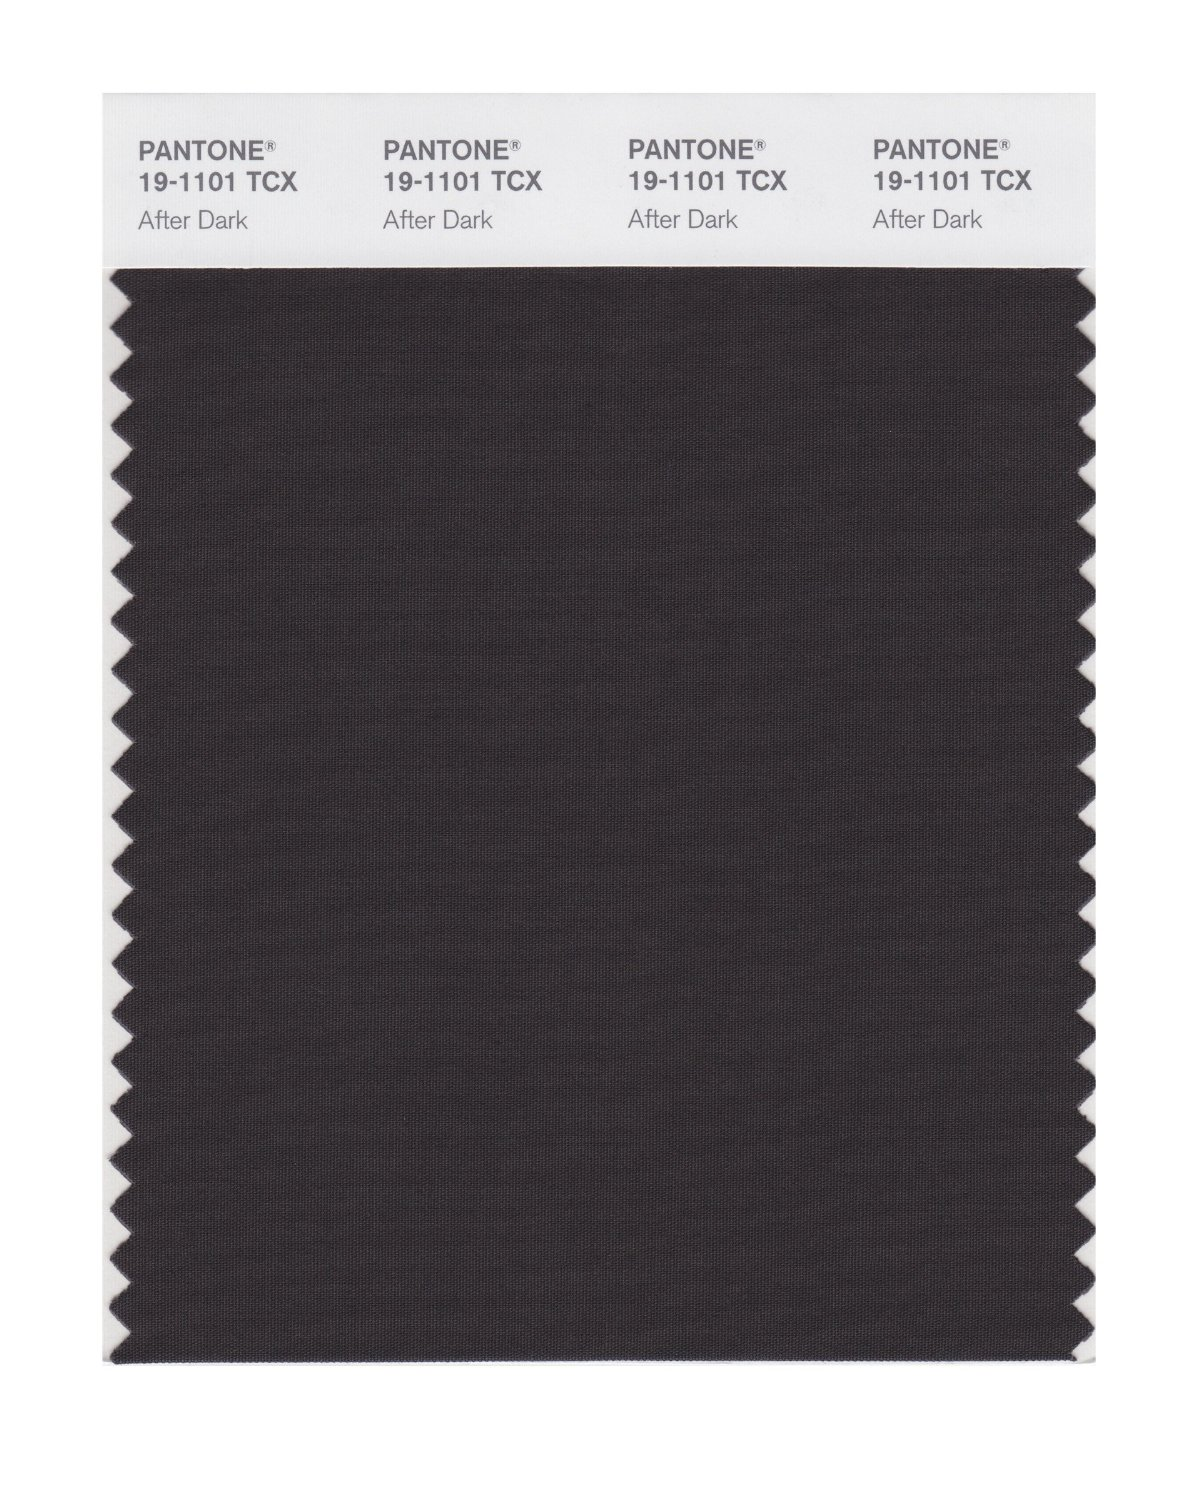 Pantone Smart Swatch 19-1101 After Dark